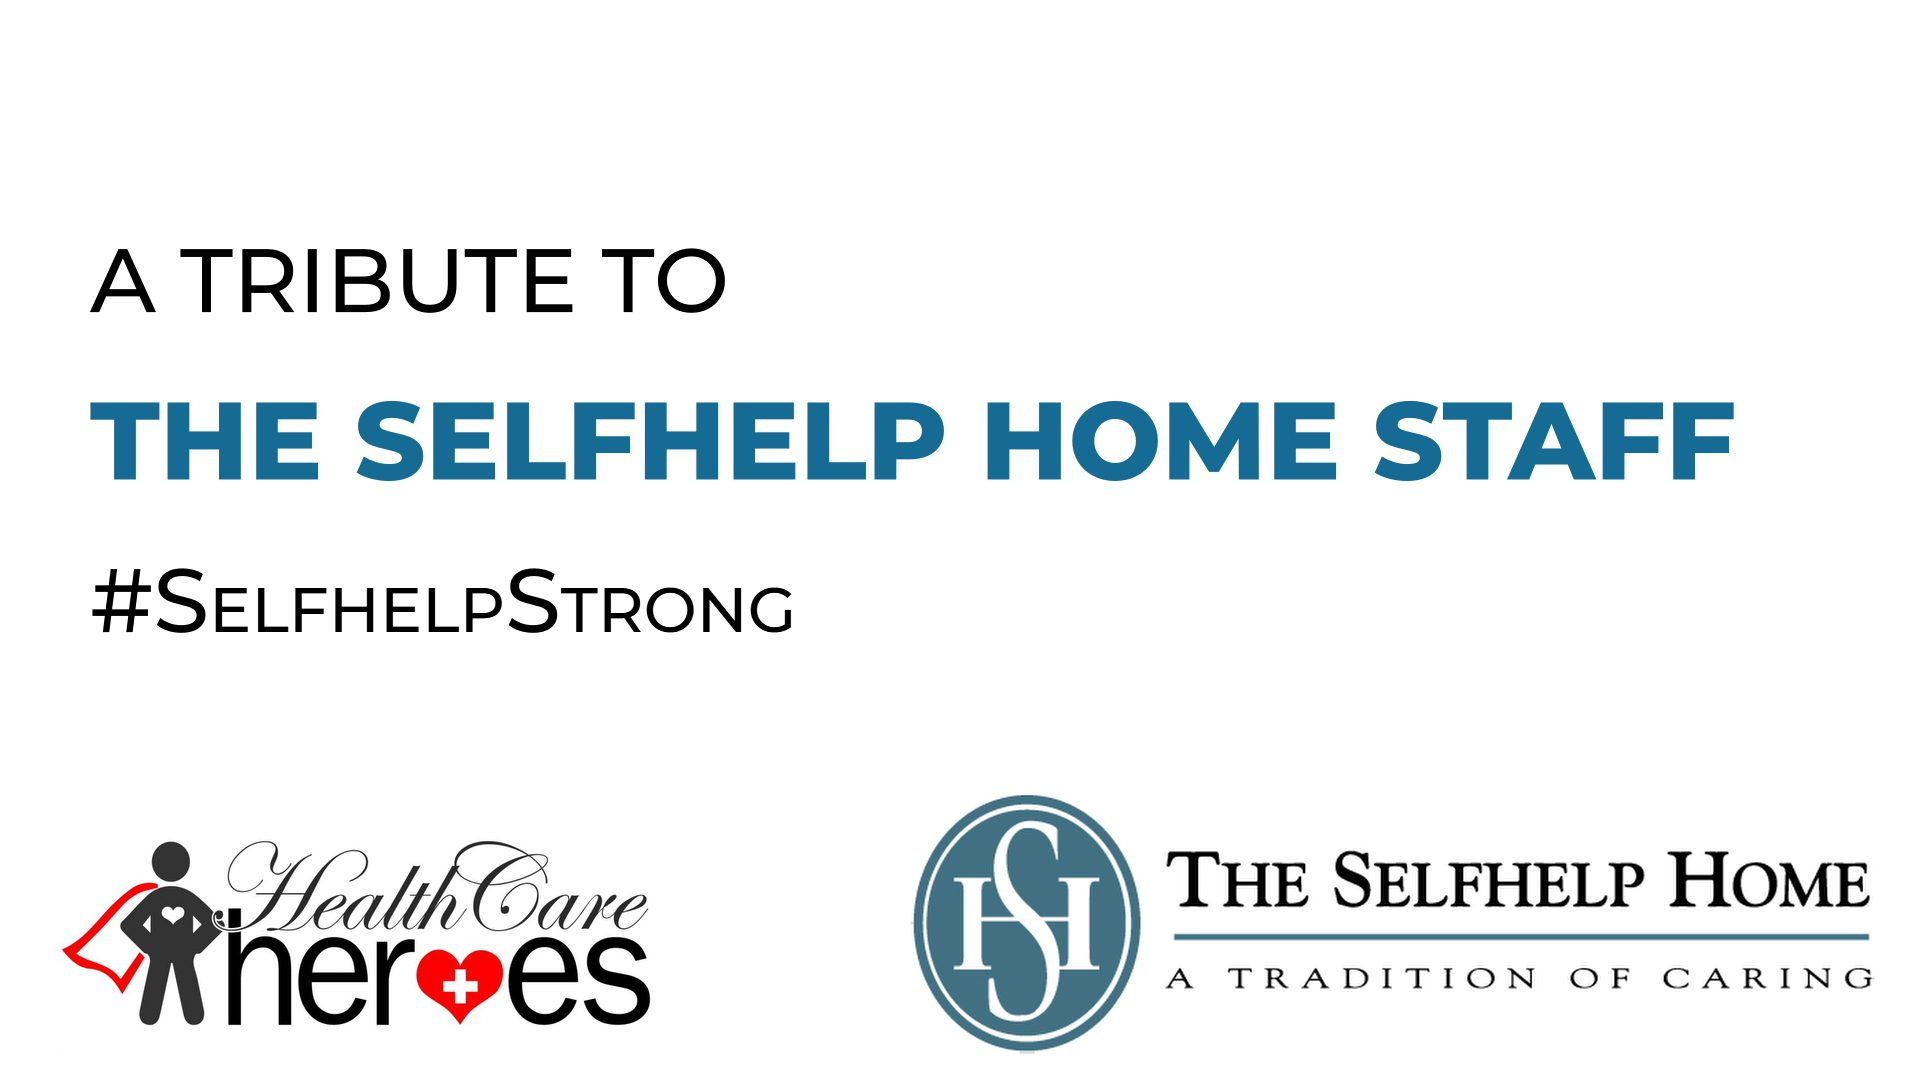 Selfhelp Strong - A Tribute To Our Healthcare Heroes